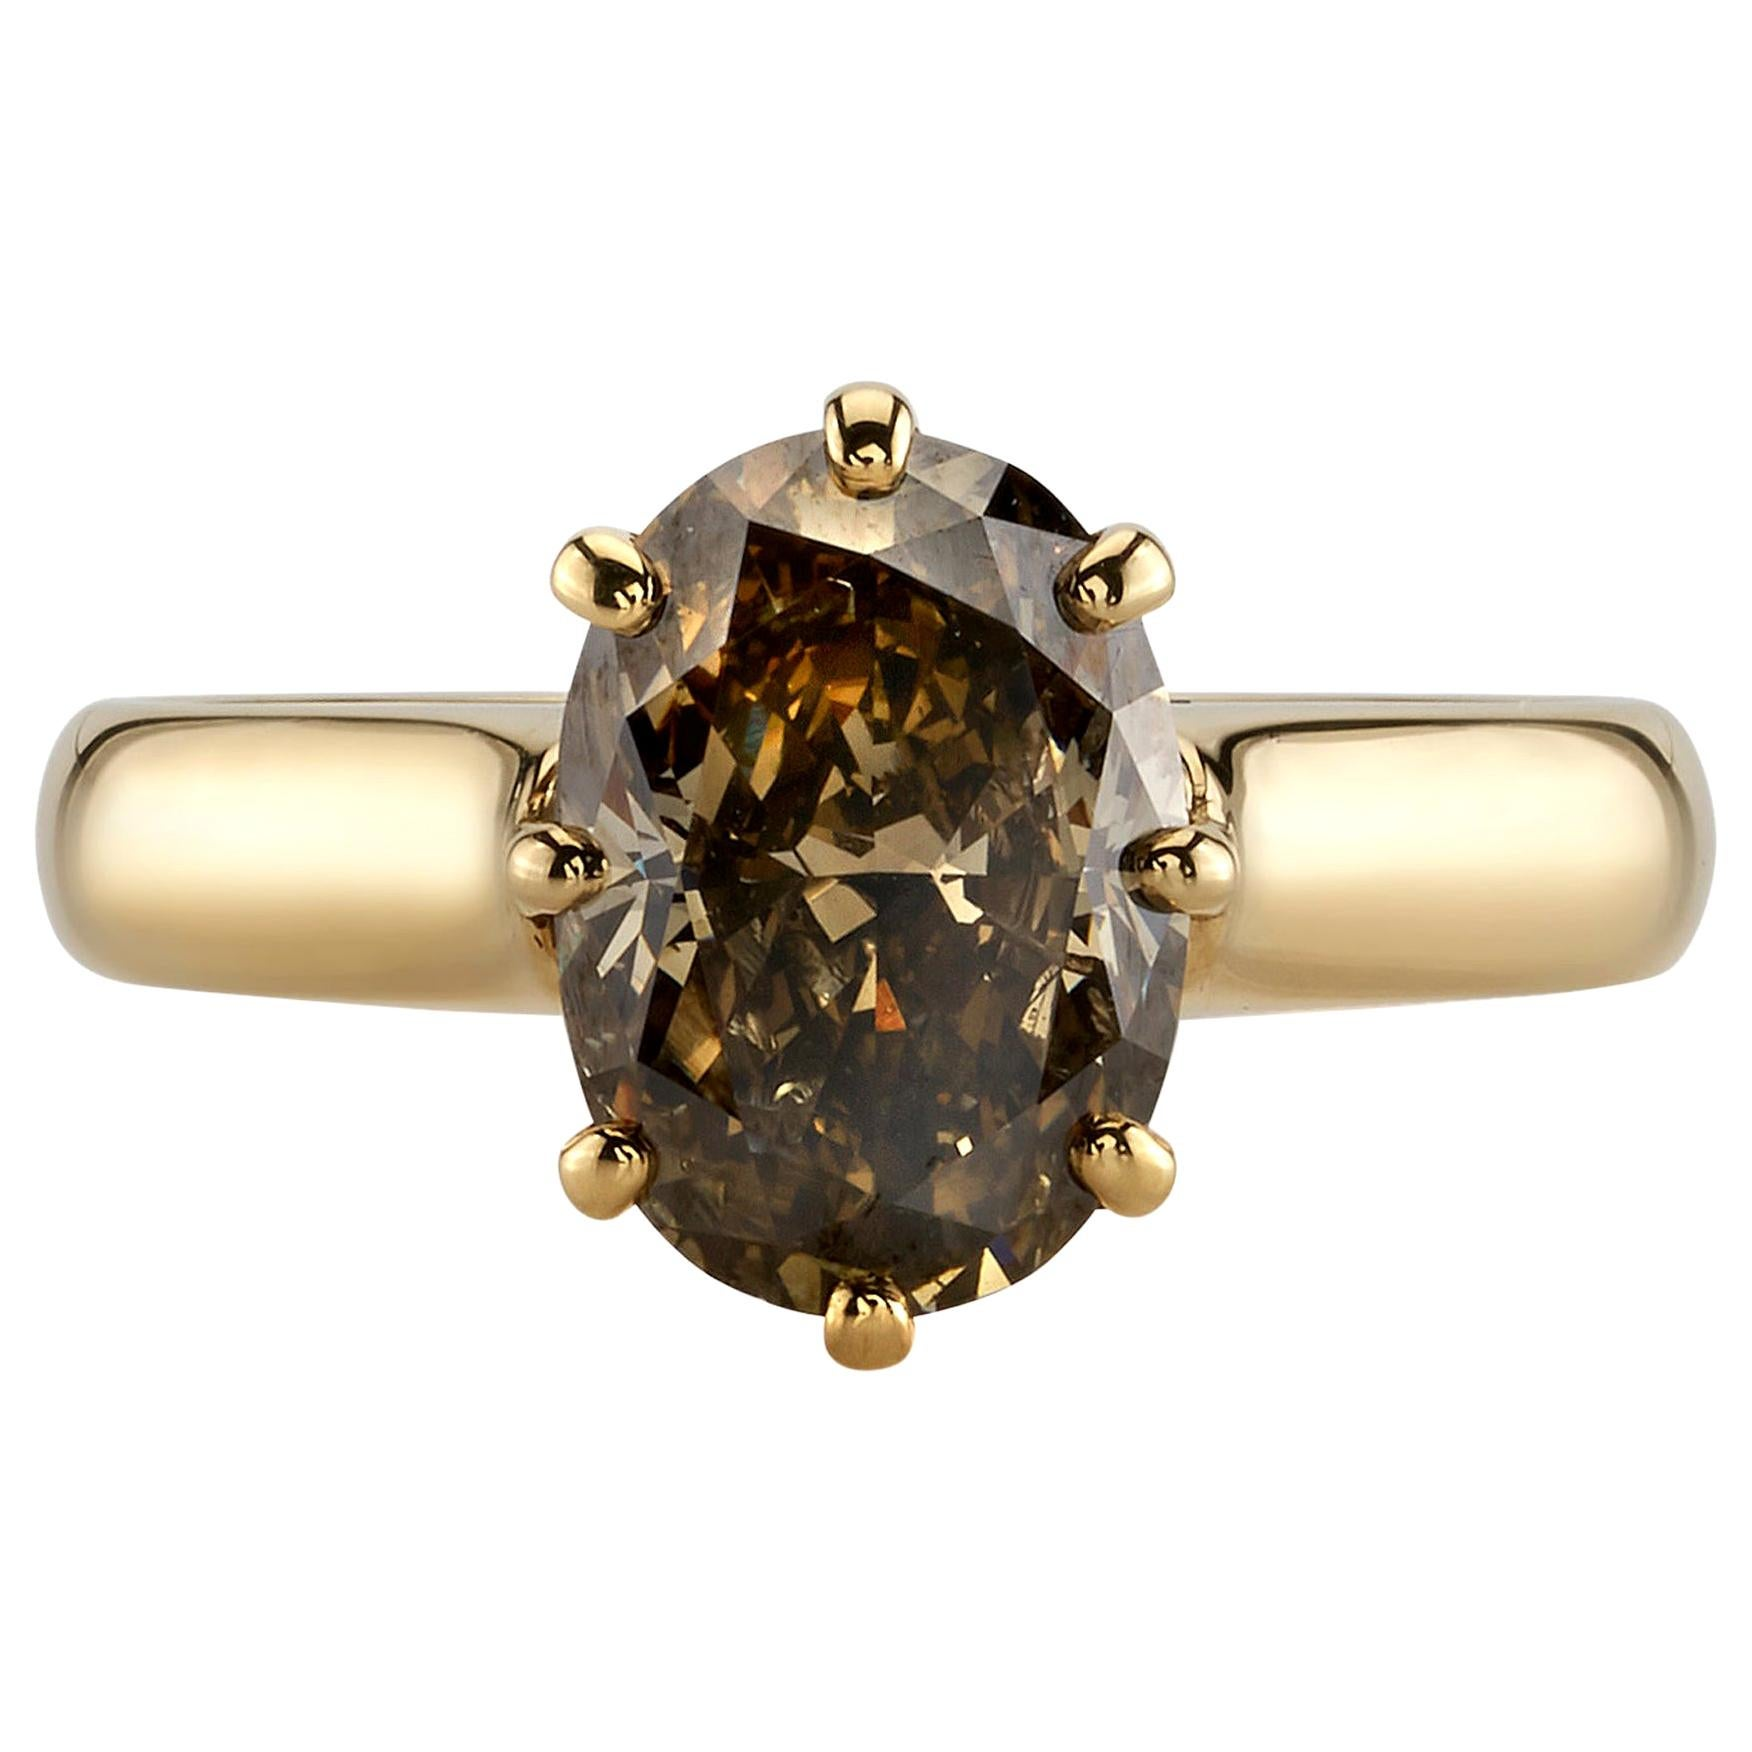 Handcrafted Gayle Oval Shaped Diamond Ring by Single Stone